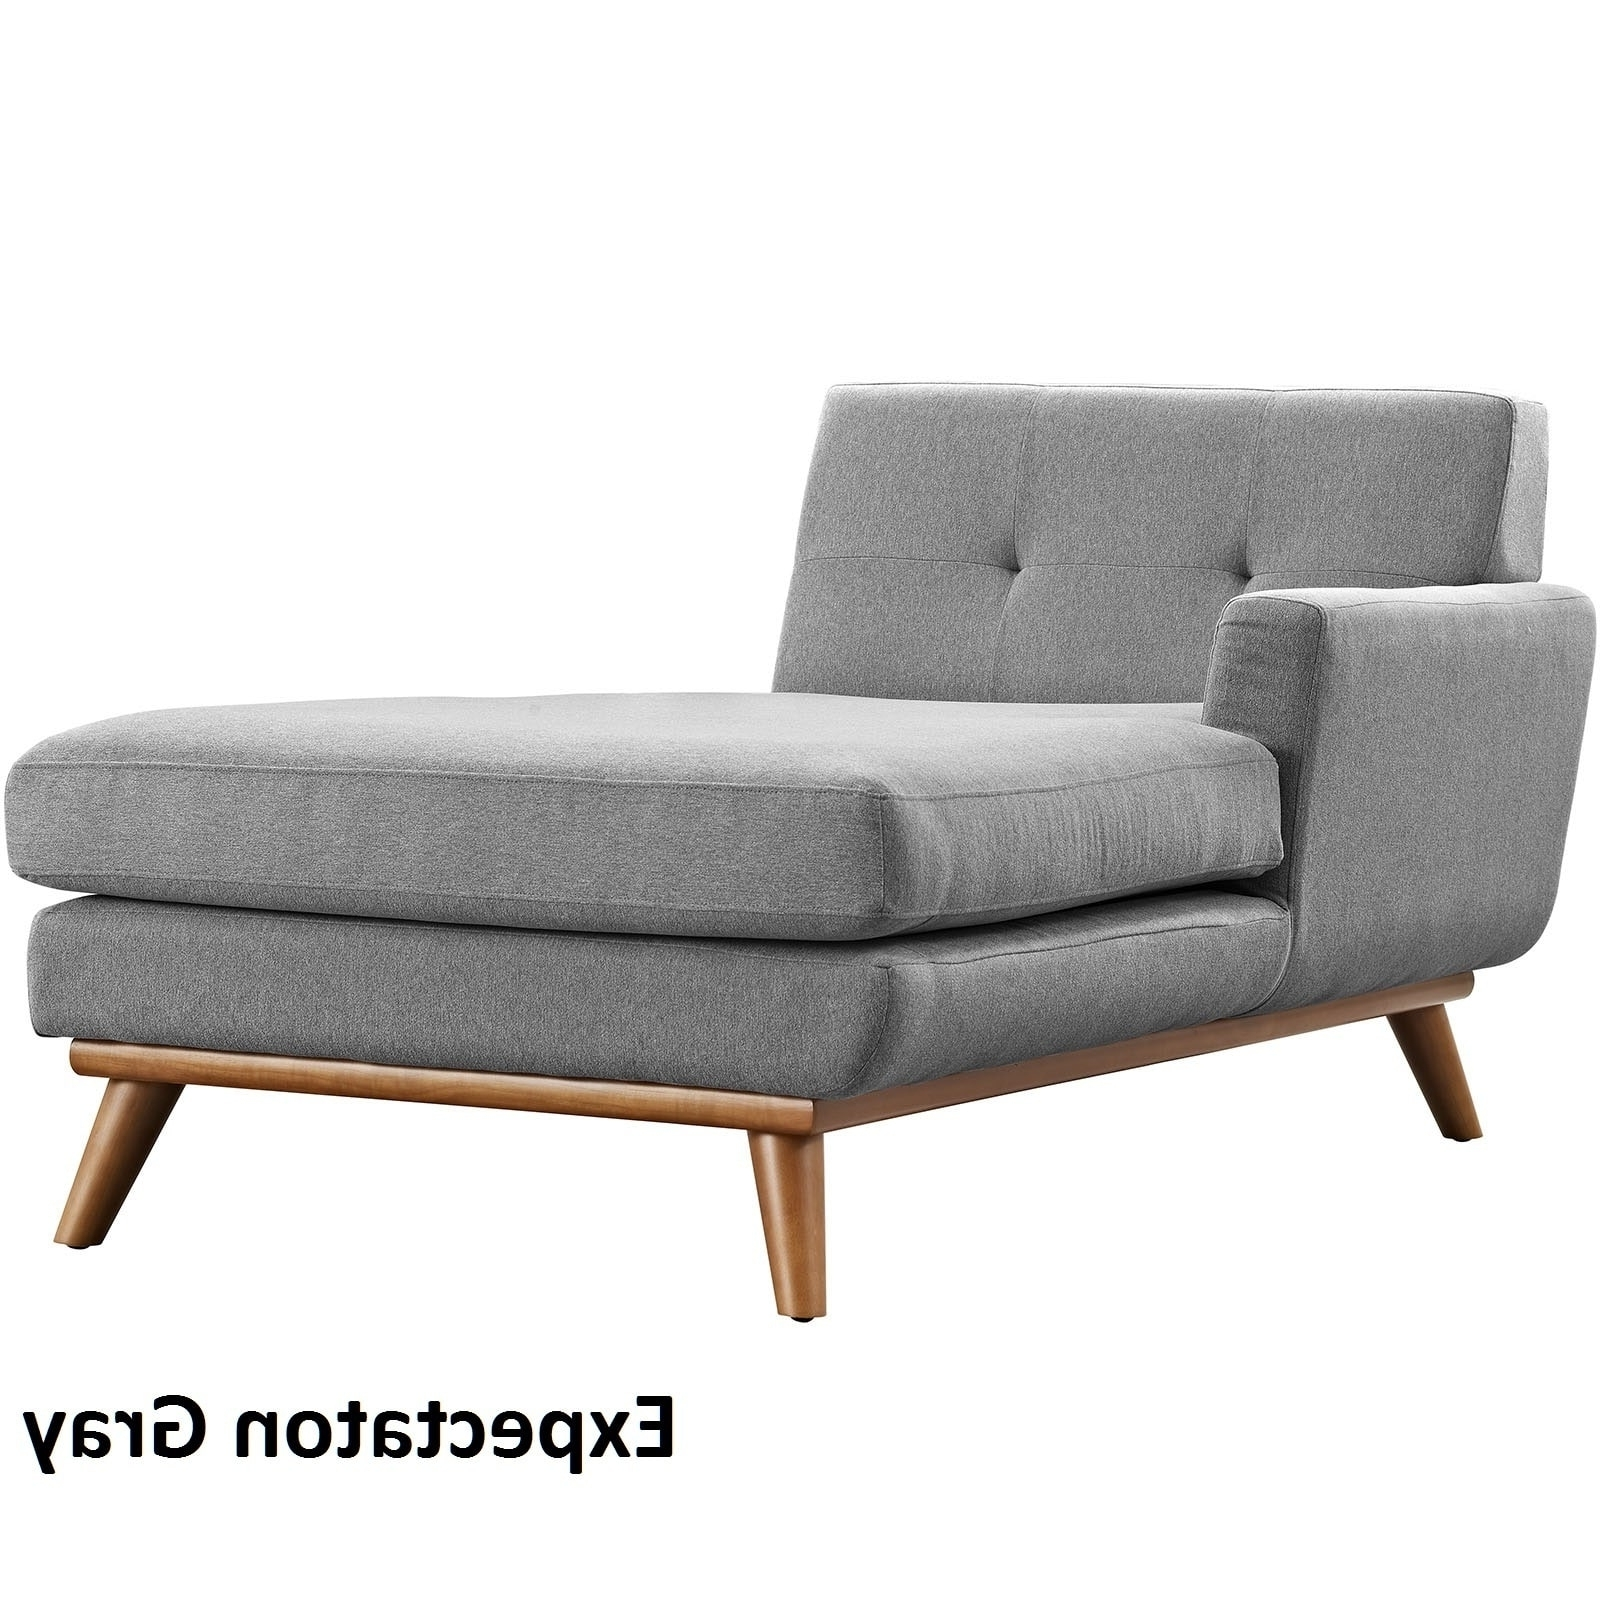 Engage Left Arm Mid Century Chaise Lounge – Free Shipping Today Intended For Most Popular Right Arm Chaise Lounges (View 4 of 15)